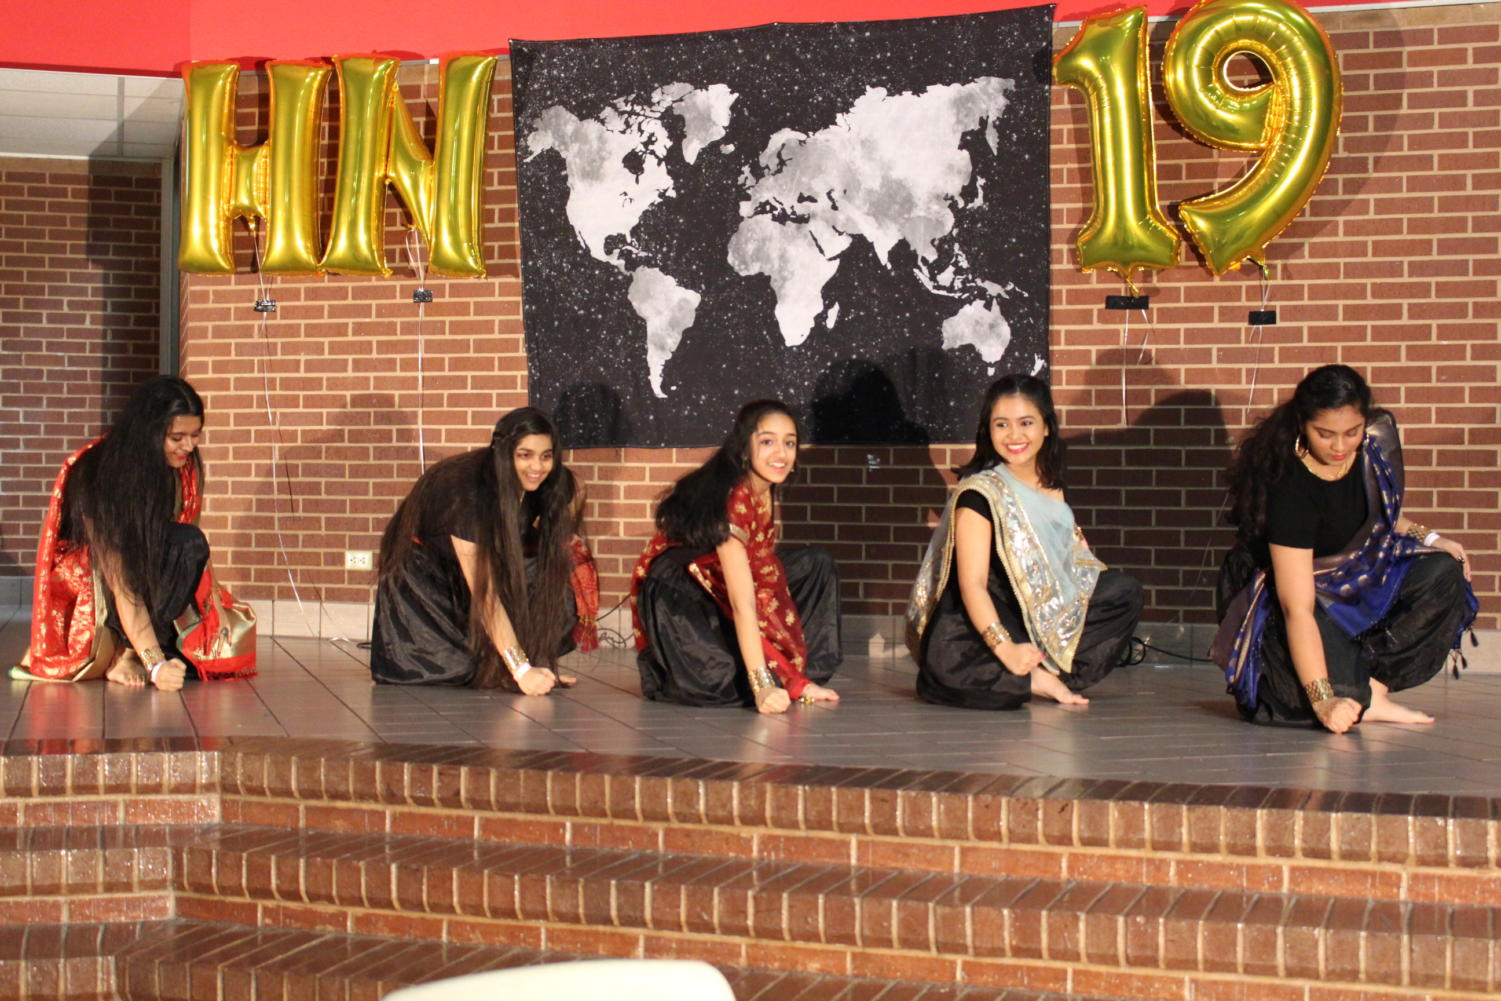 Coppell High School Club Rhythm (left to right) junior Srija Uppu, junior Nupur Rishi, sophomore Maybelle Abraham, junior Shreya Bandopadhyay and sophomore Nikitha Gokaraju  perform a Bollywood melody on Friday night at Coppell High School in the commons. Heritage Night celebrates cultural diversity and brings students together to enjoy this distinction.